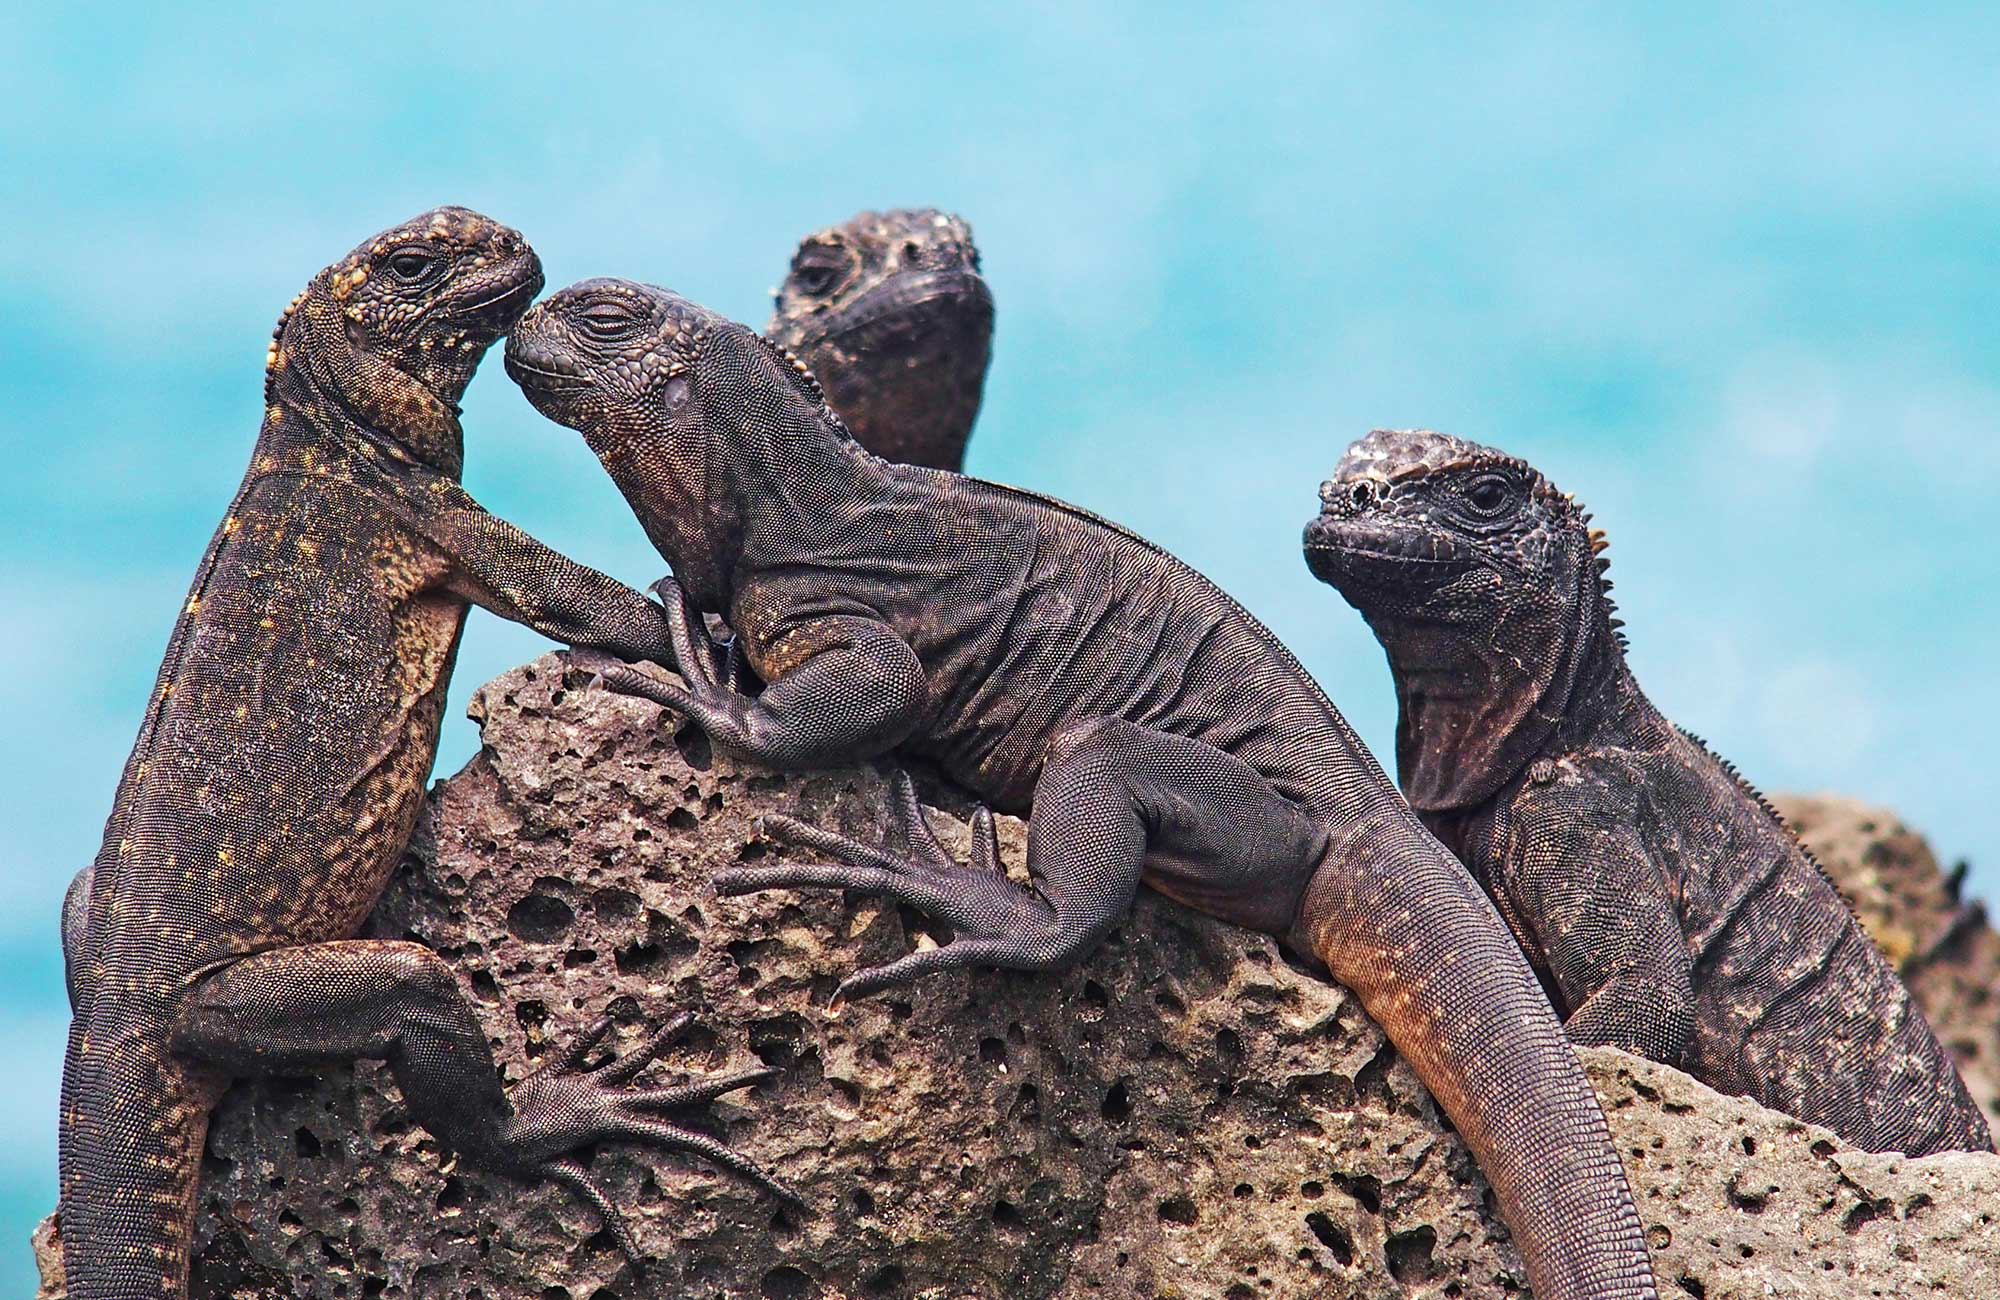 Travel like Darwin and spot wildlife on the Galapagos | KILROY